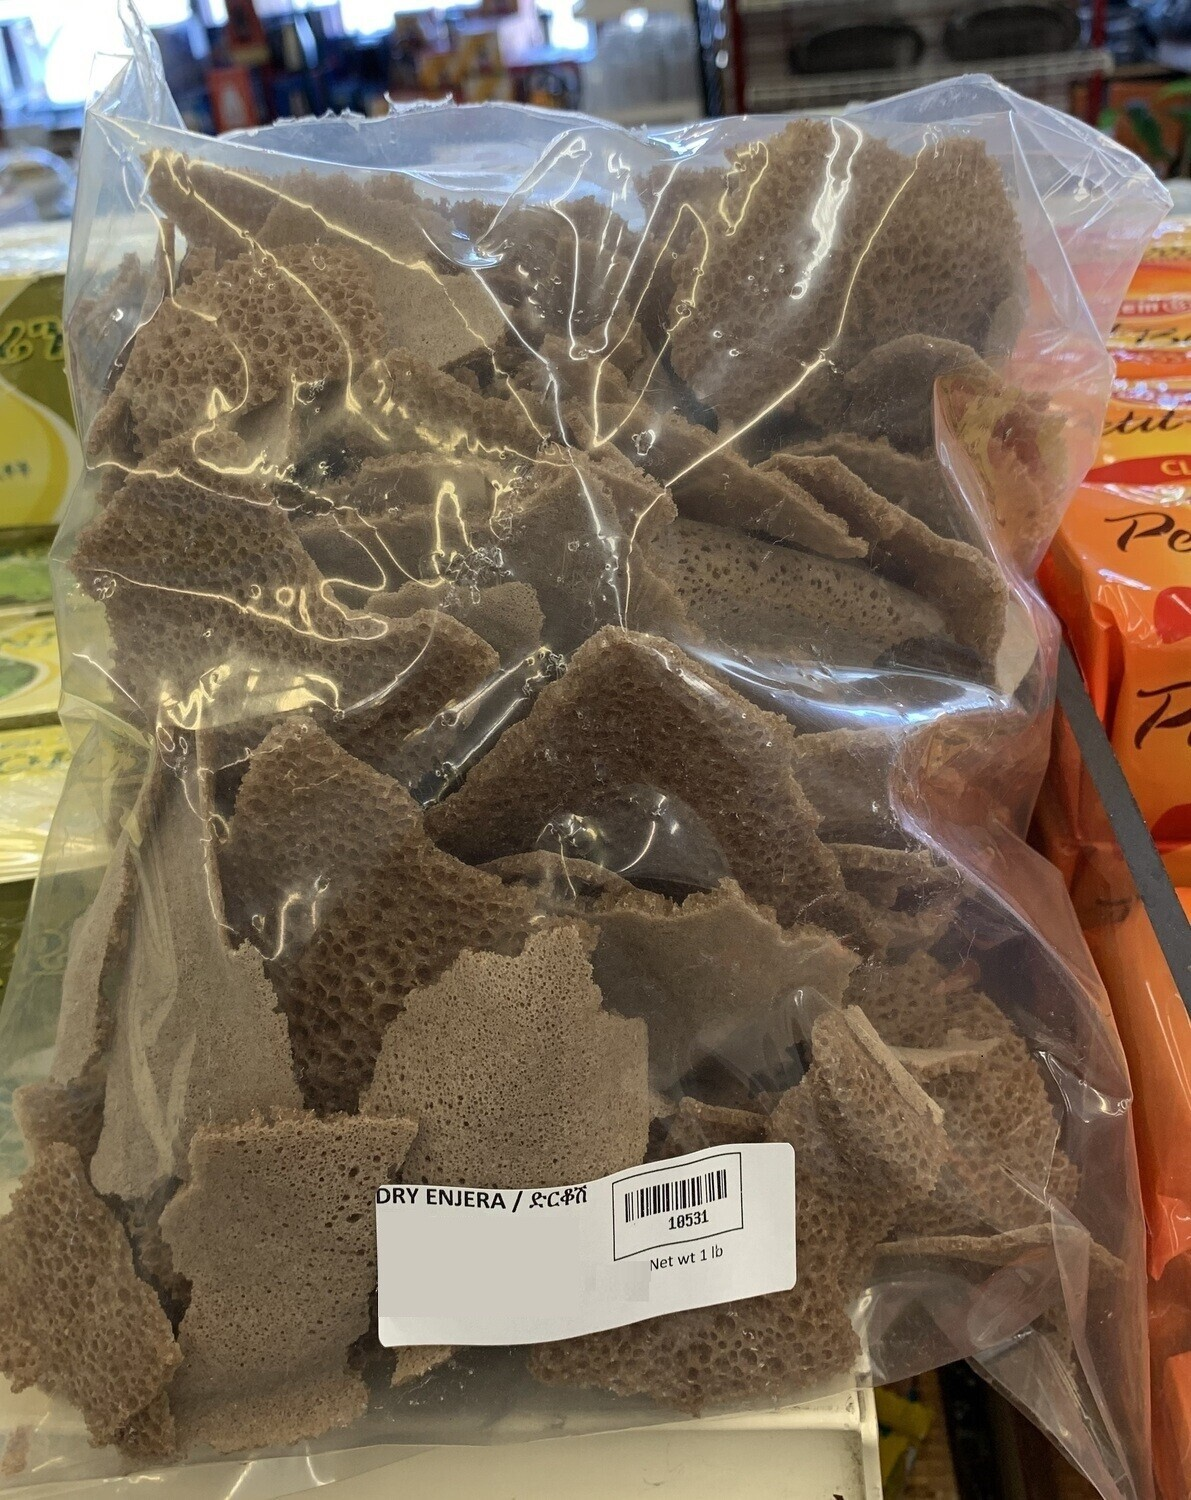 ድርቆሽ Dirkosh Dried Injera